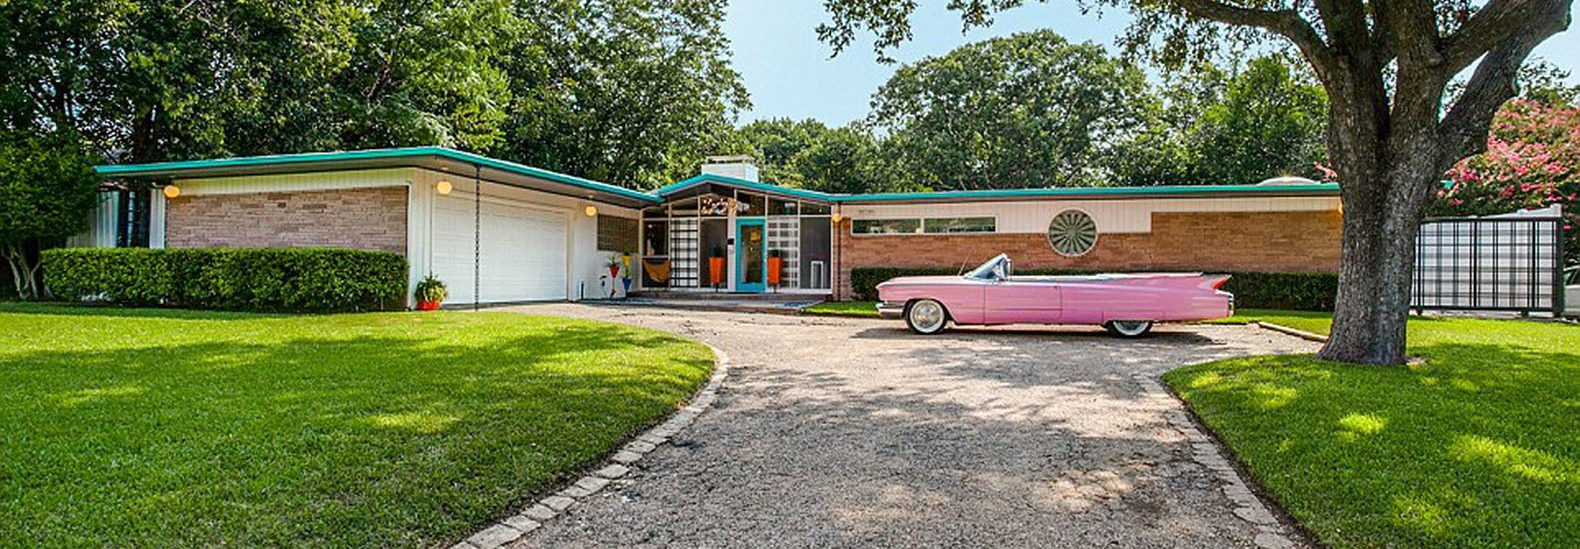 1950S House Amazing 1950S Time Capsule House In Dallas Could Be Yours